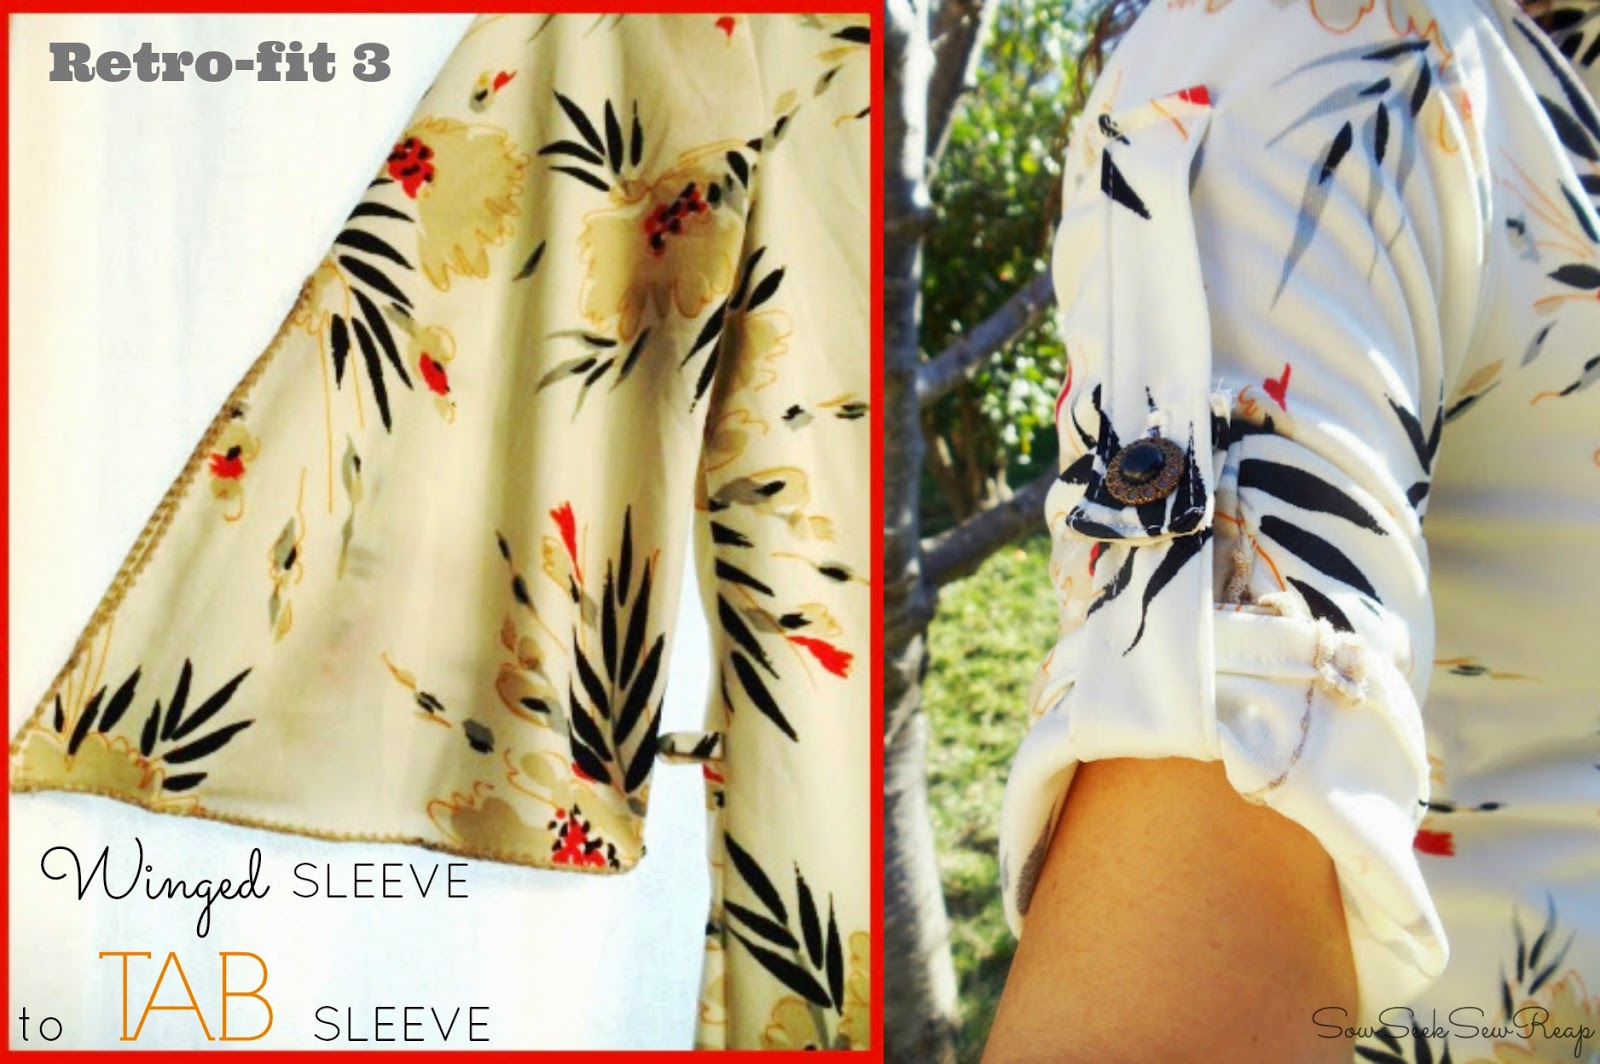 diy tab sleeve, fixing sleeves, retro redo's, retro clothing, thrifted retro